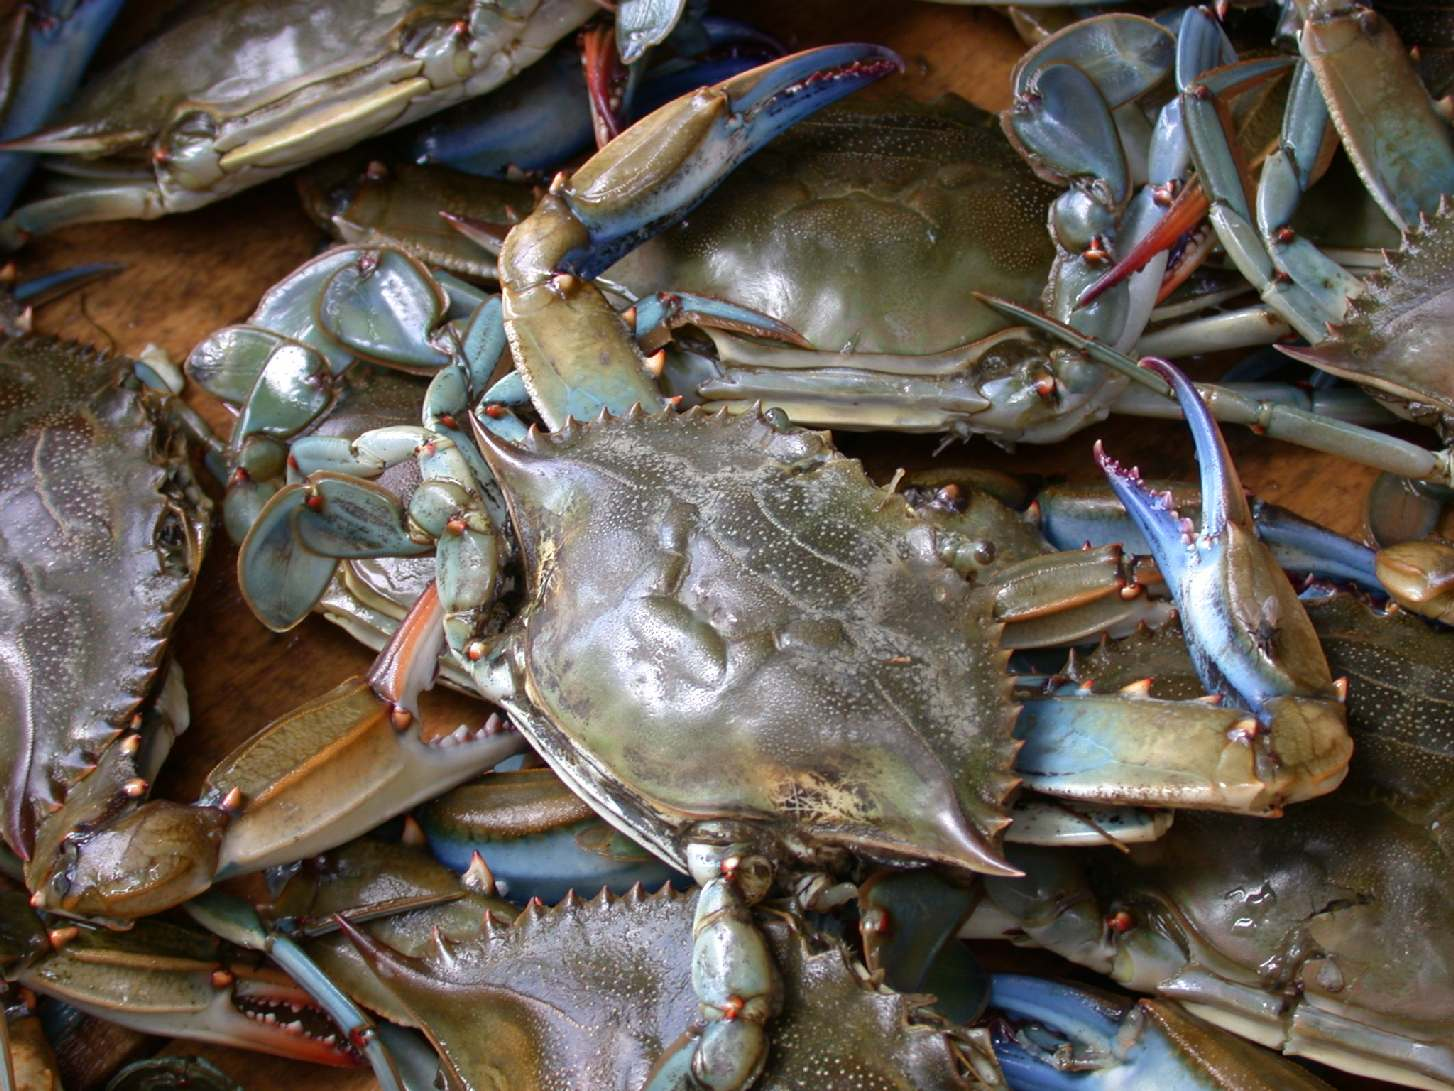 Blue crabs are some of the most important (and delicious) residents of the Chesapeake Bay. Males and females prefer different levels of salinity (saltwater), so the ever-changing estuary is ideal for them. Image by  wpopp .